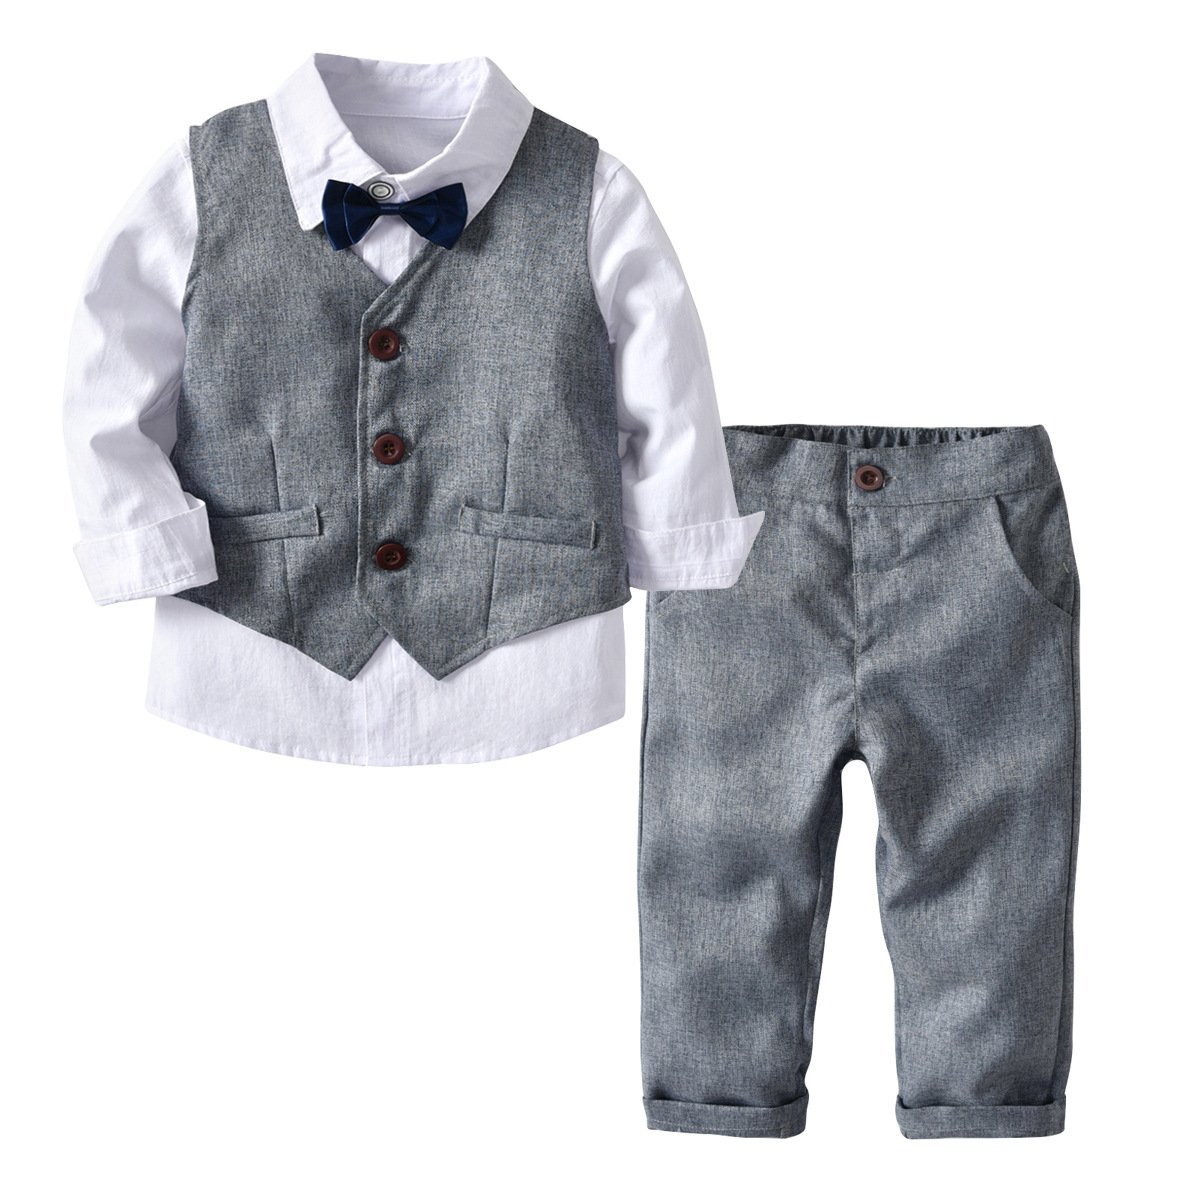 Little Boys Gentleman Formal Suit Set with Vest, Pant, Shirt, and Bow Tie, Baby Toddler Long Sleeve Wear Weding 4Pcs Outfit (White, 2-3T/90)